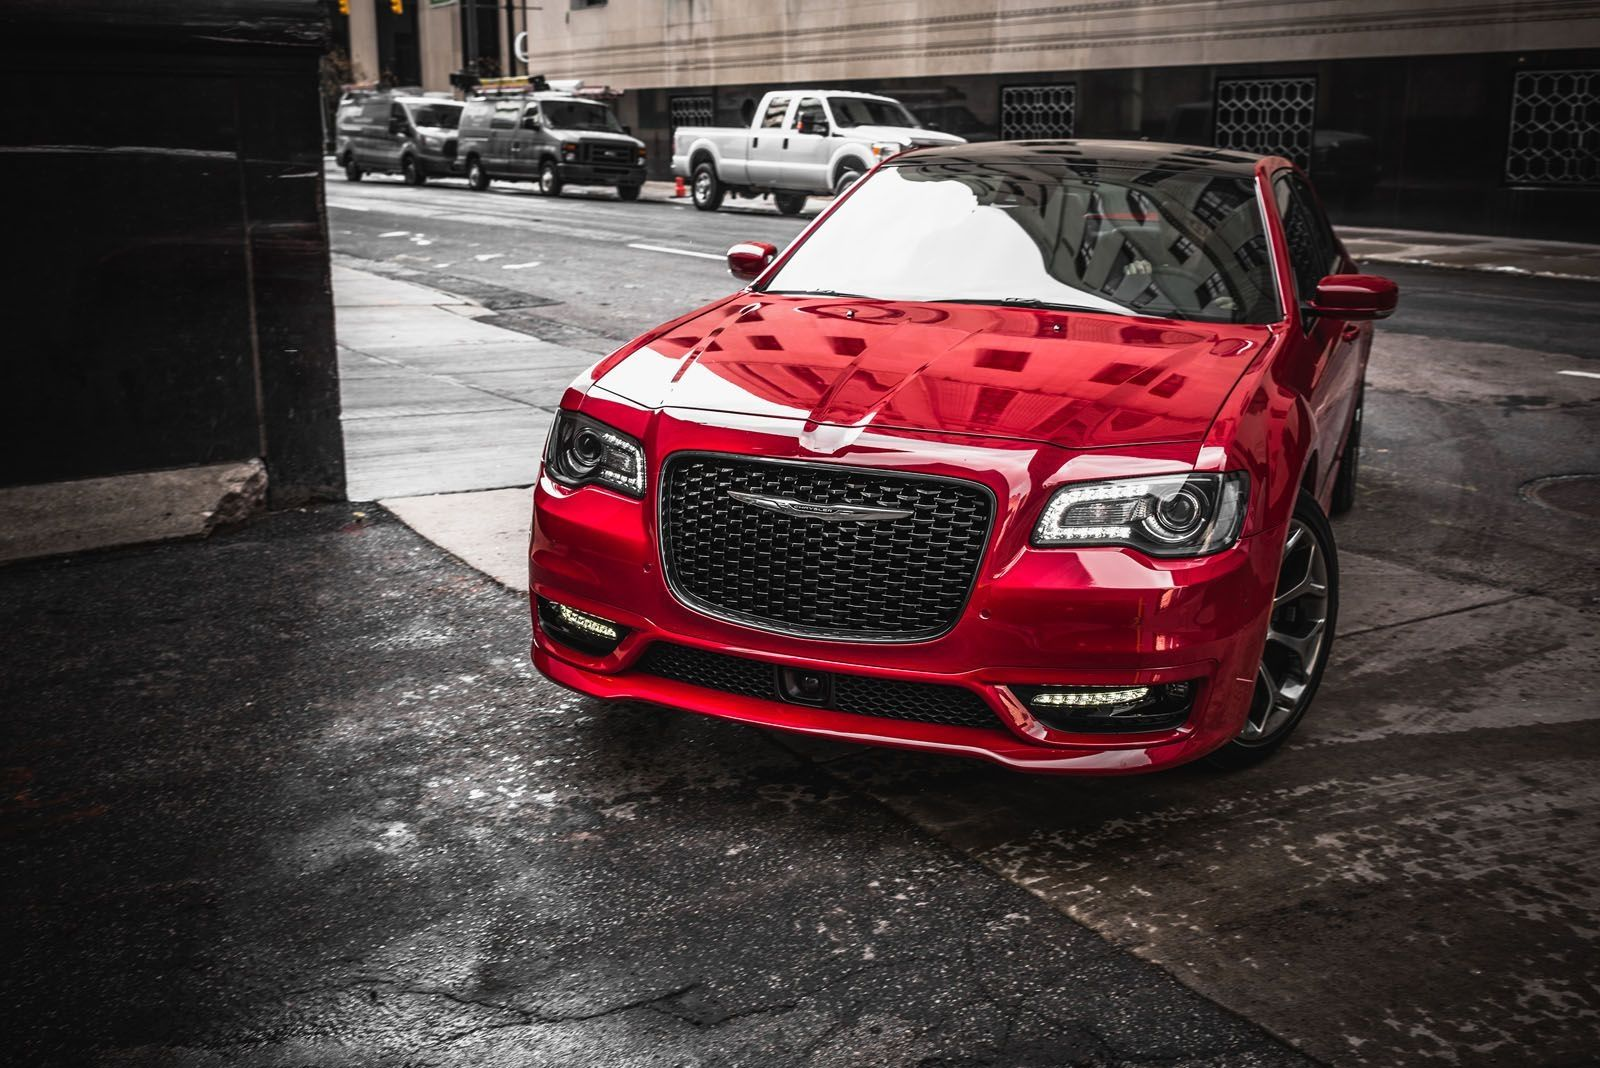 The 2019 Chrysler 300 S New Review With Images Chrysler 300